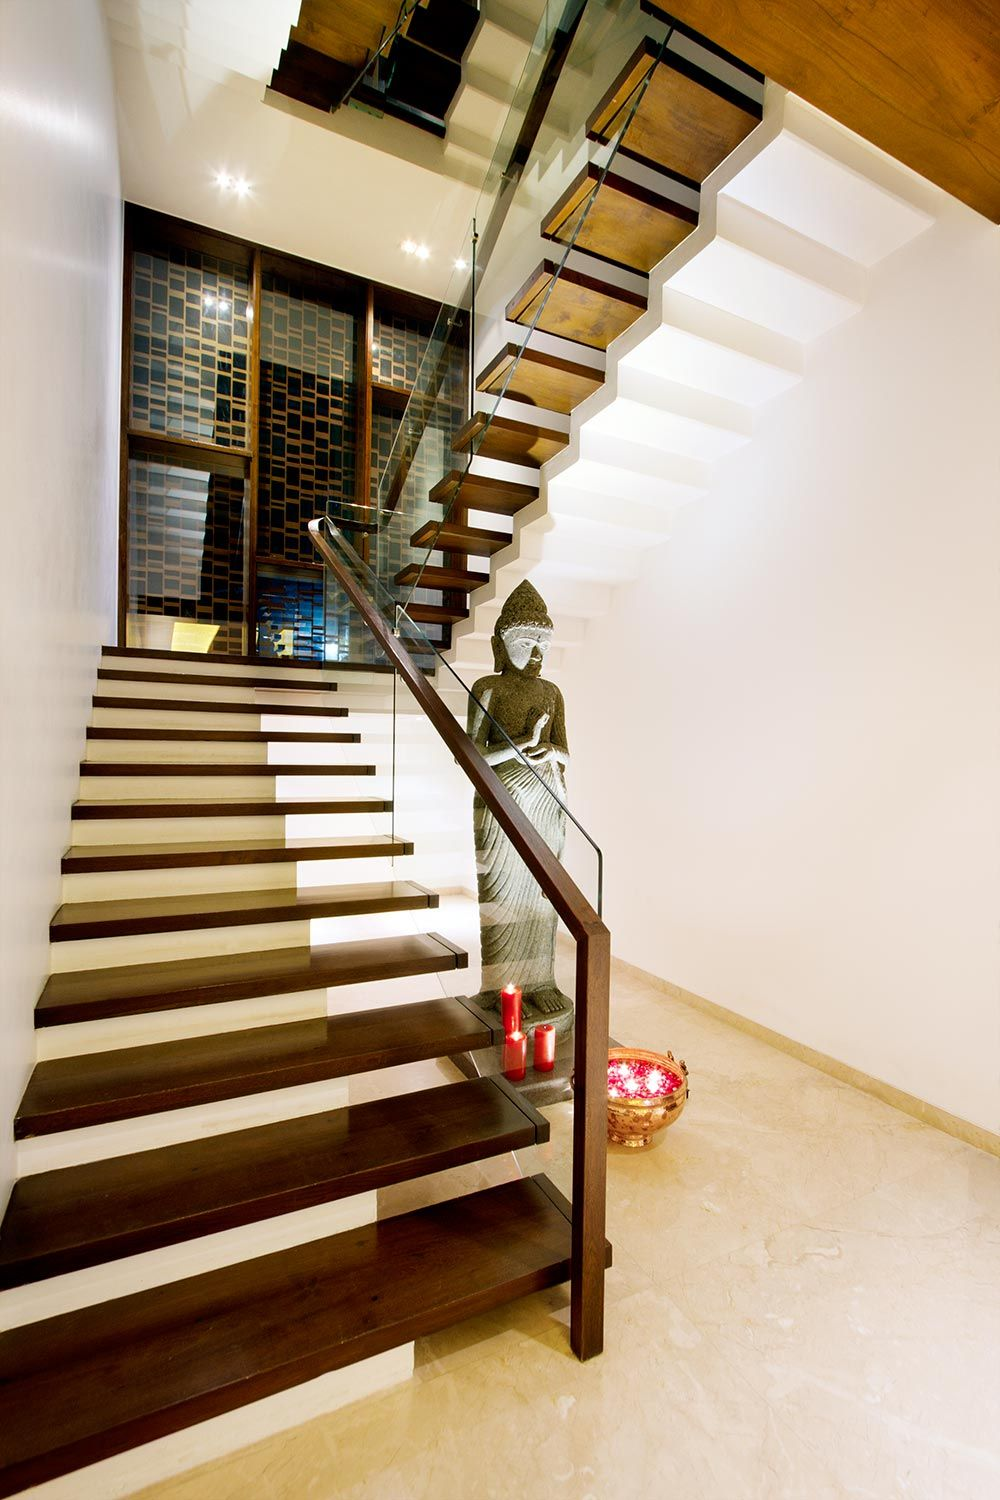 Pin by Sheena Kavuri on new window Stair | Staircase ...